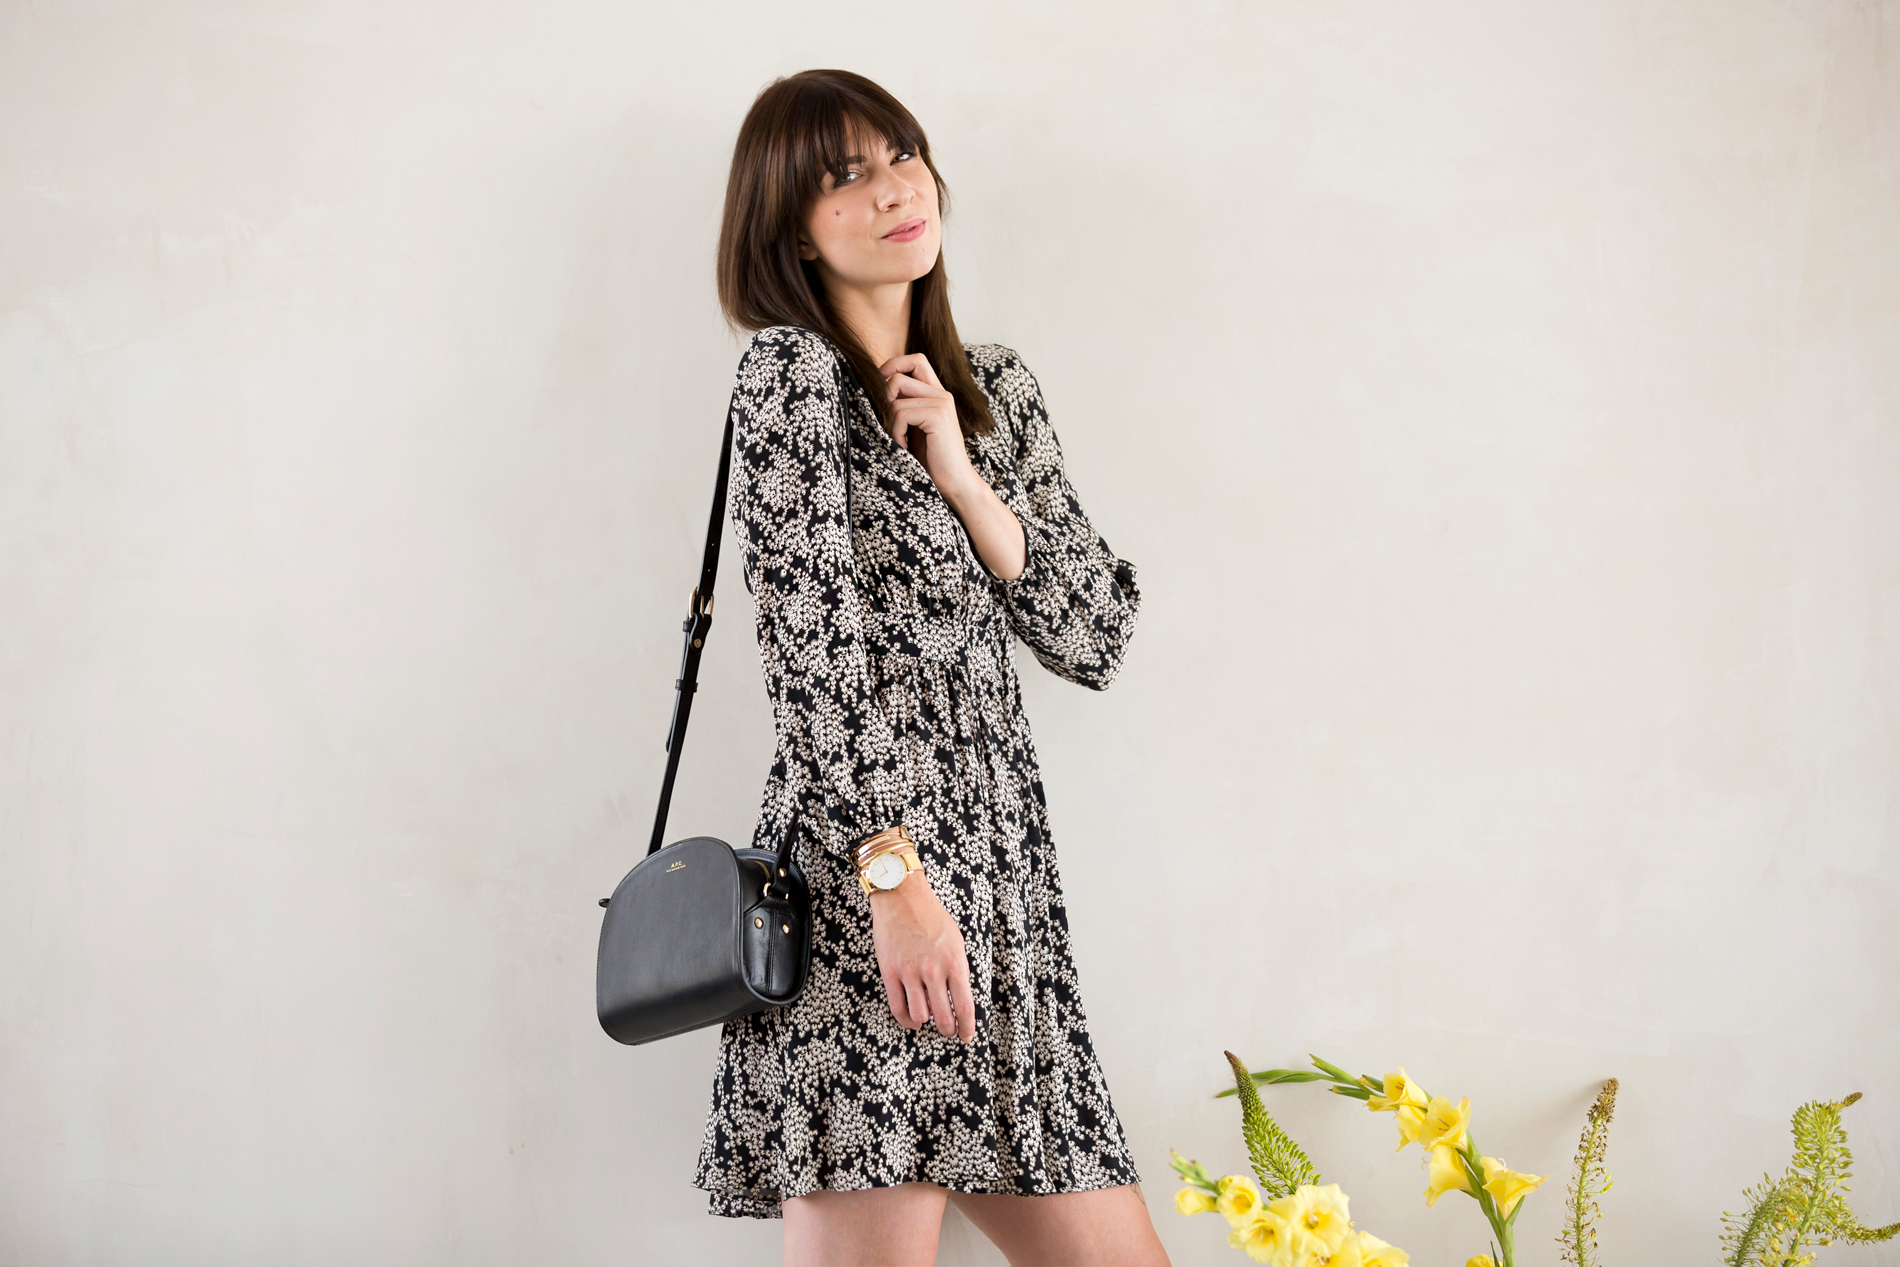 max&co maxandco summer dress floral print black white minimal romantic cute online shop dresses shopping a.p.c. halfmoon bag luxury girl bangs brunette francaise parisienne saint laurent espadrilles ootd look fashionblogger ricarda schernus cats & dogs 3